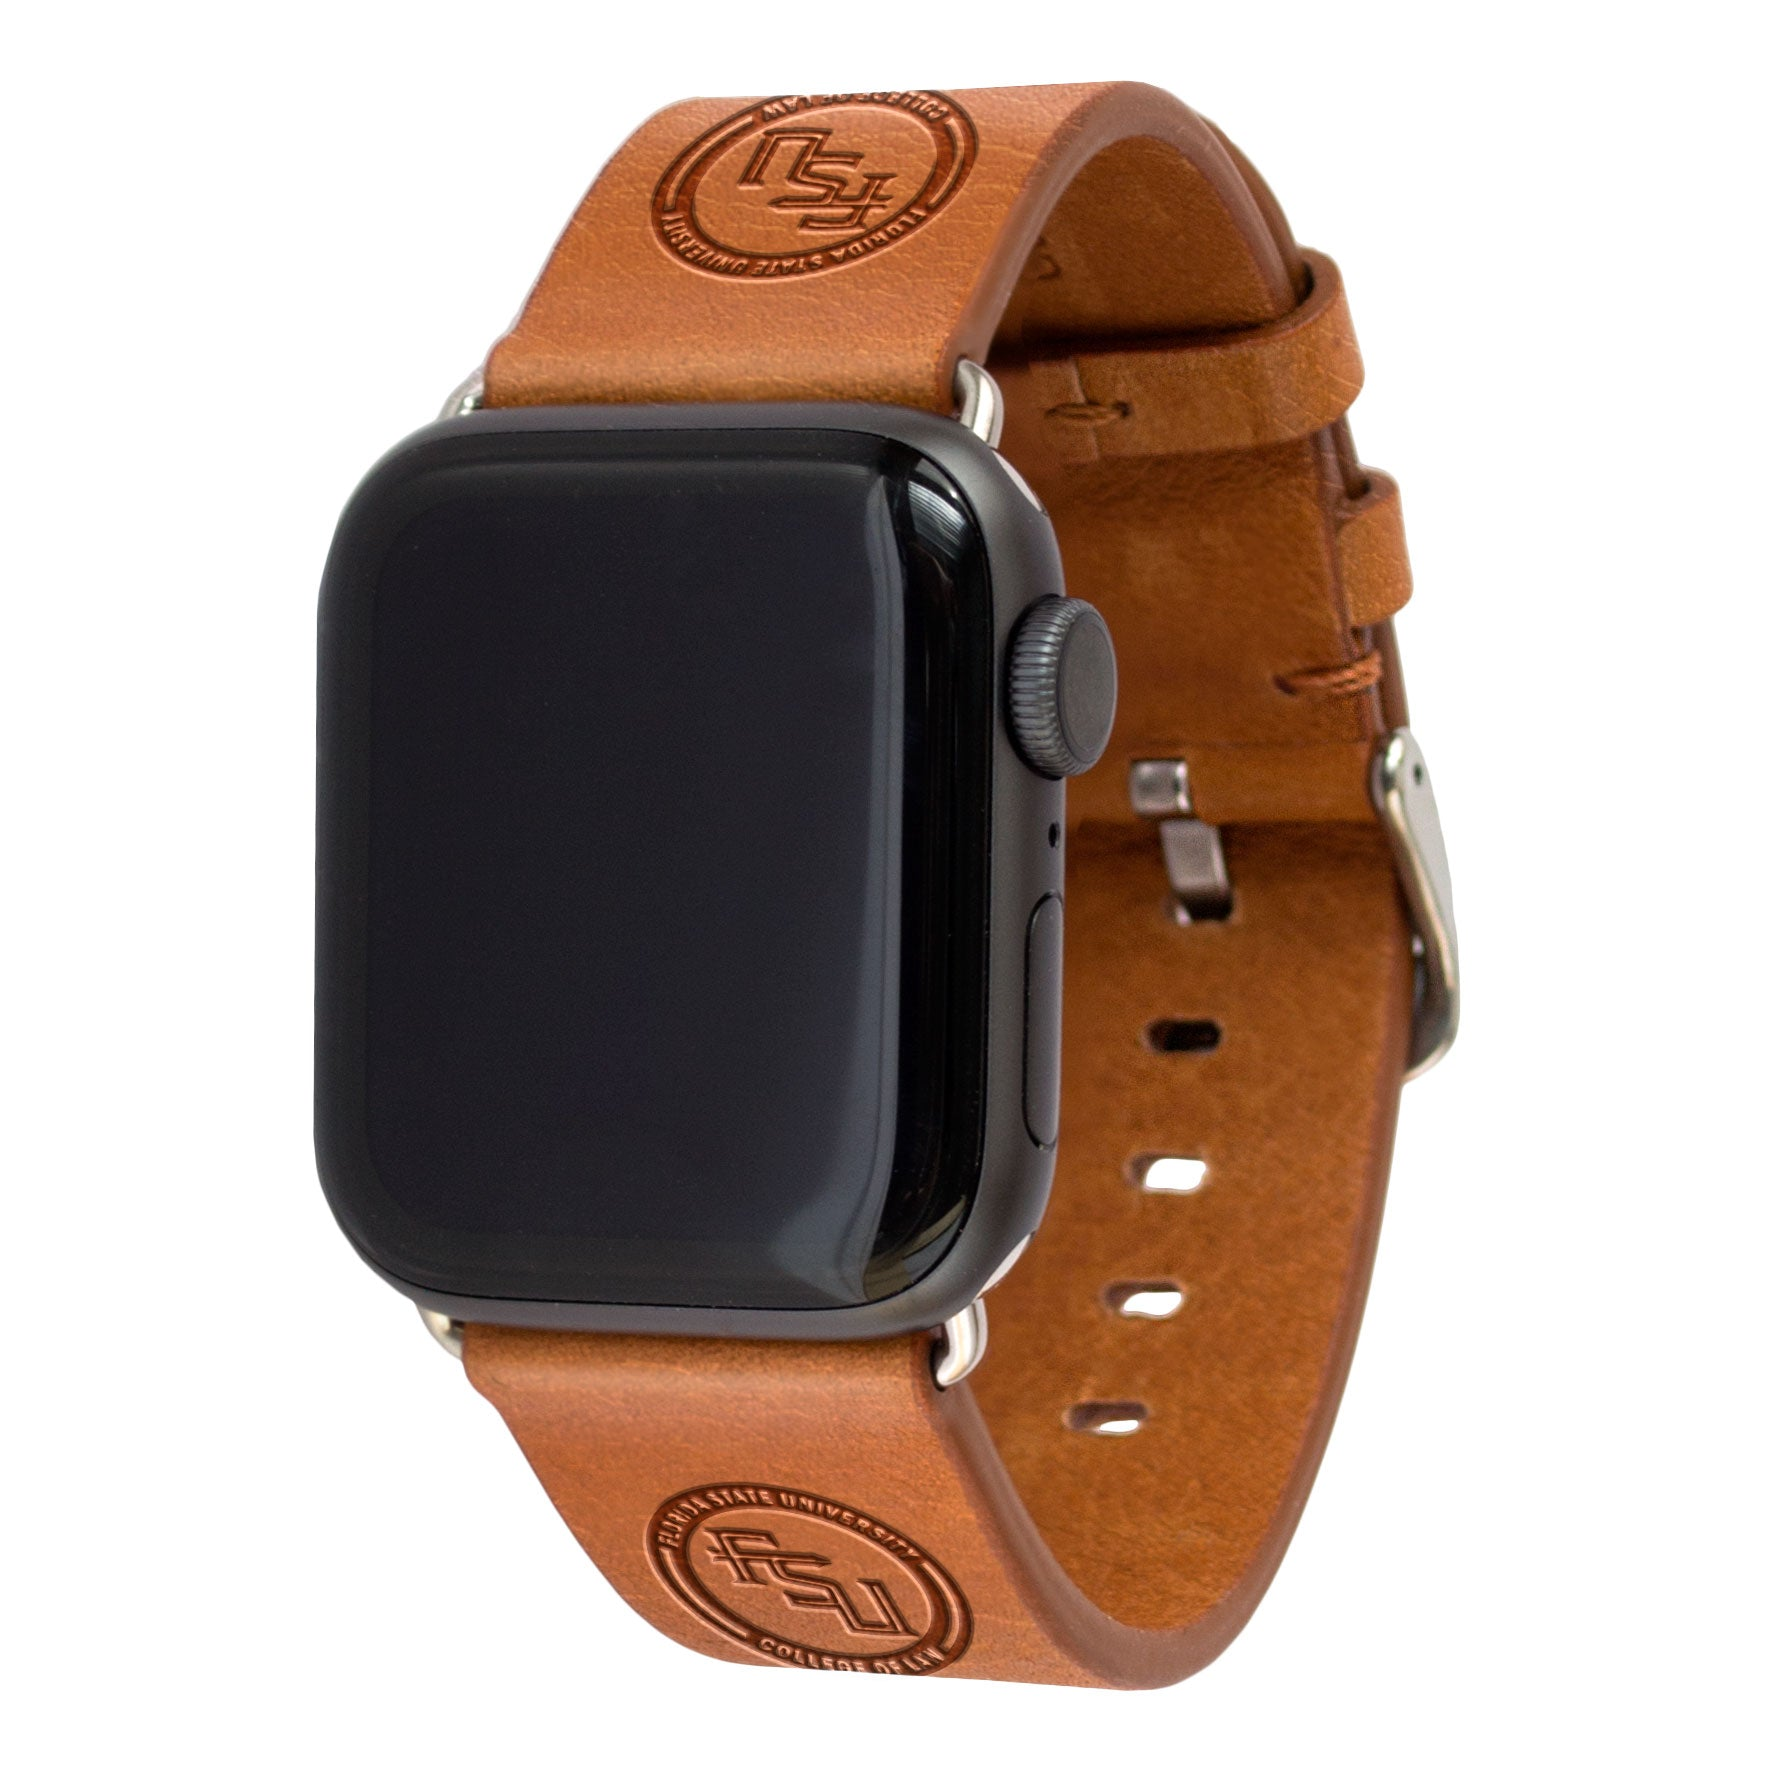 Florida State University College of Law Leather Apple Watch Band